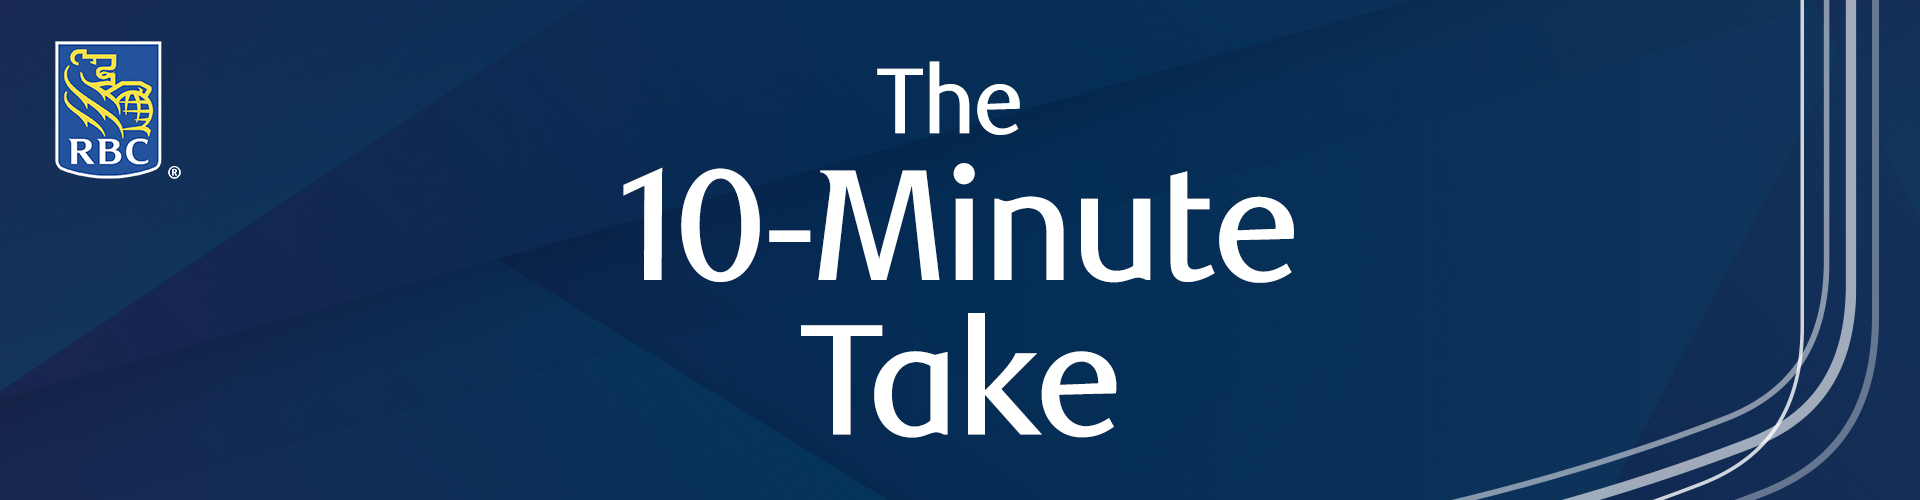 The 10-Minute Take